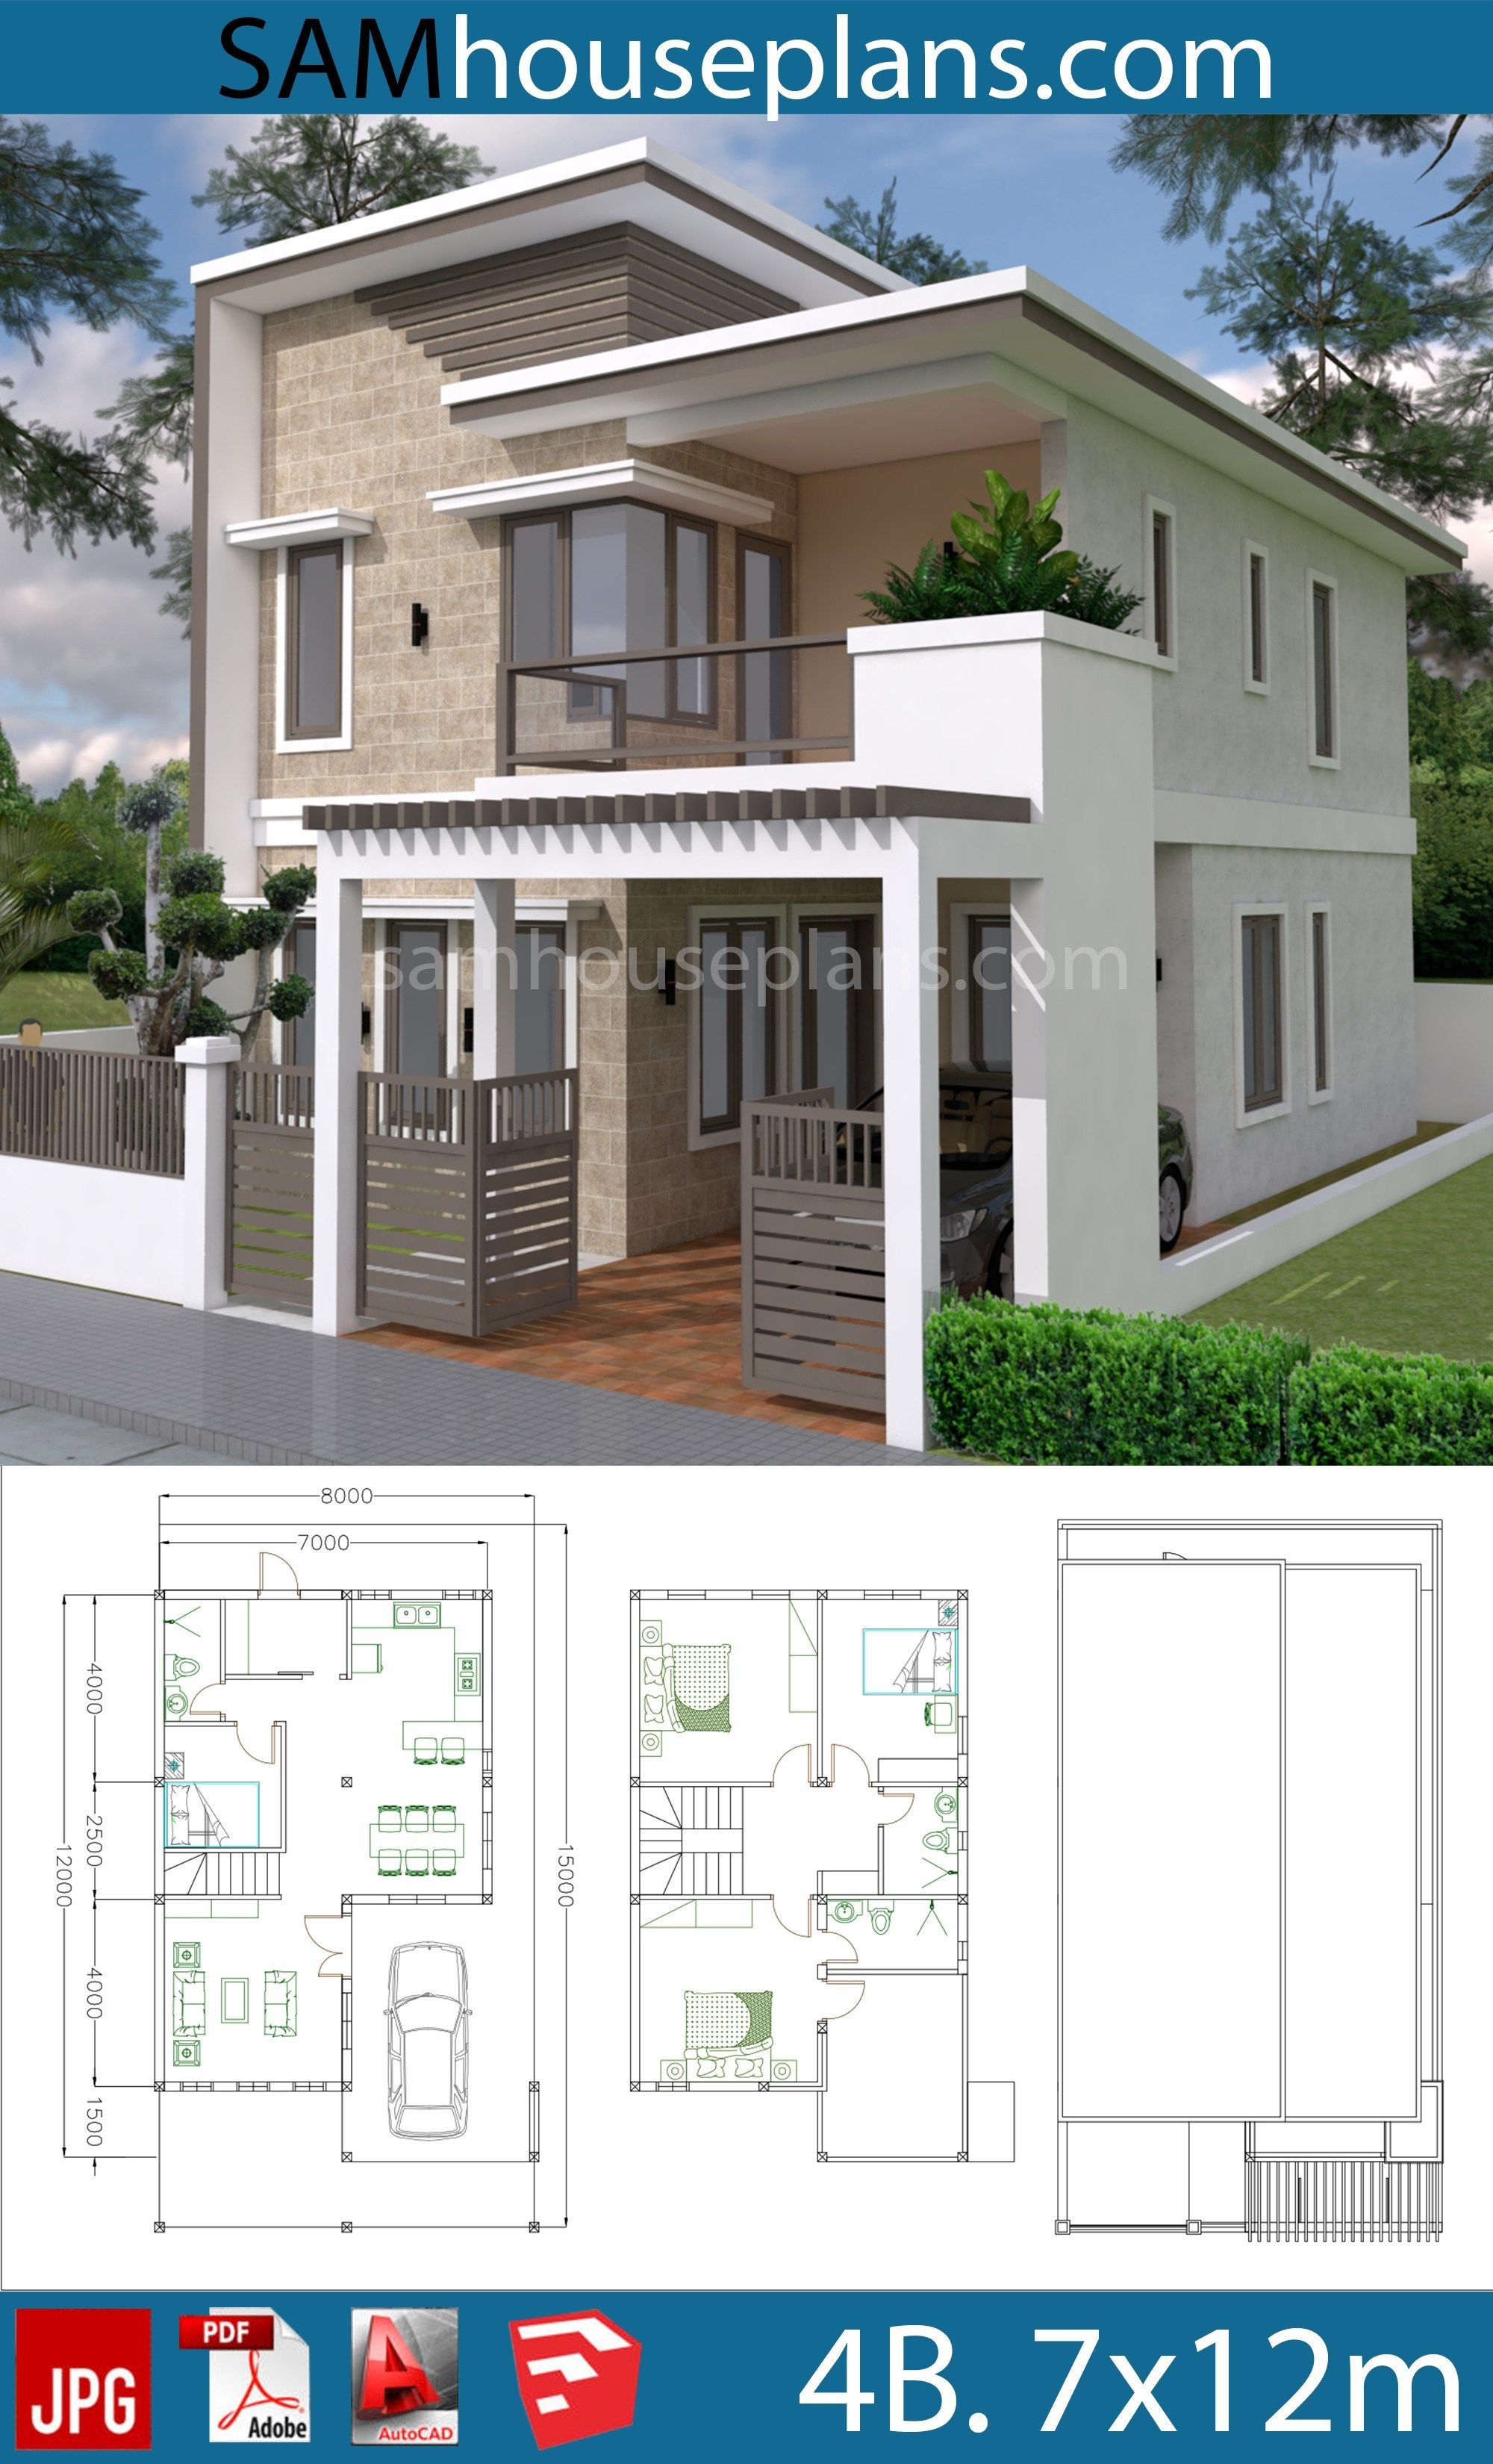 House Plans 7x12m With 4 Bedrooms Plot 8x15 Diseno Casas